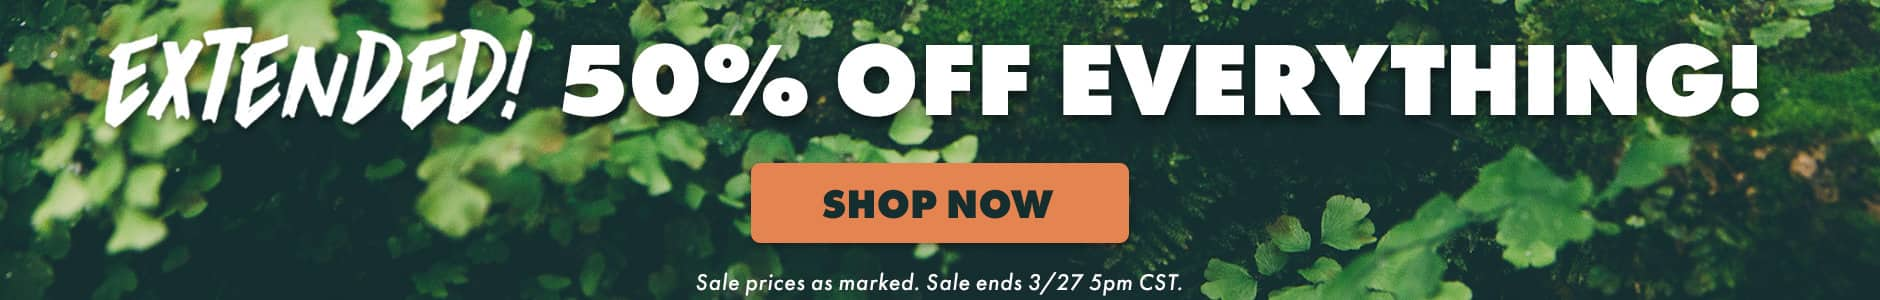 Extended! 50% off everything! Shop now. Sale prices as marked. Sale ends 3/27 5PM CST.